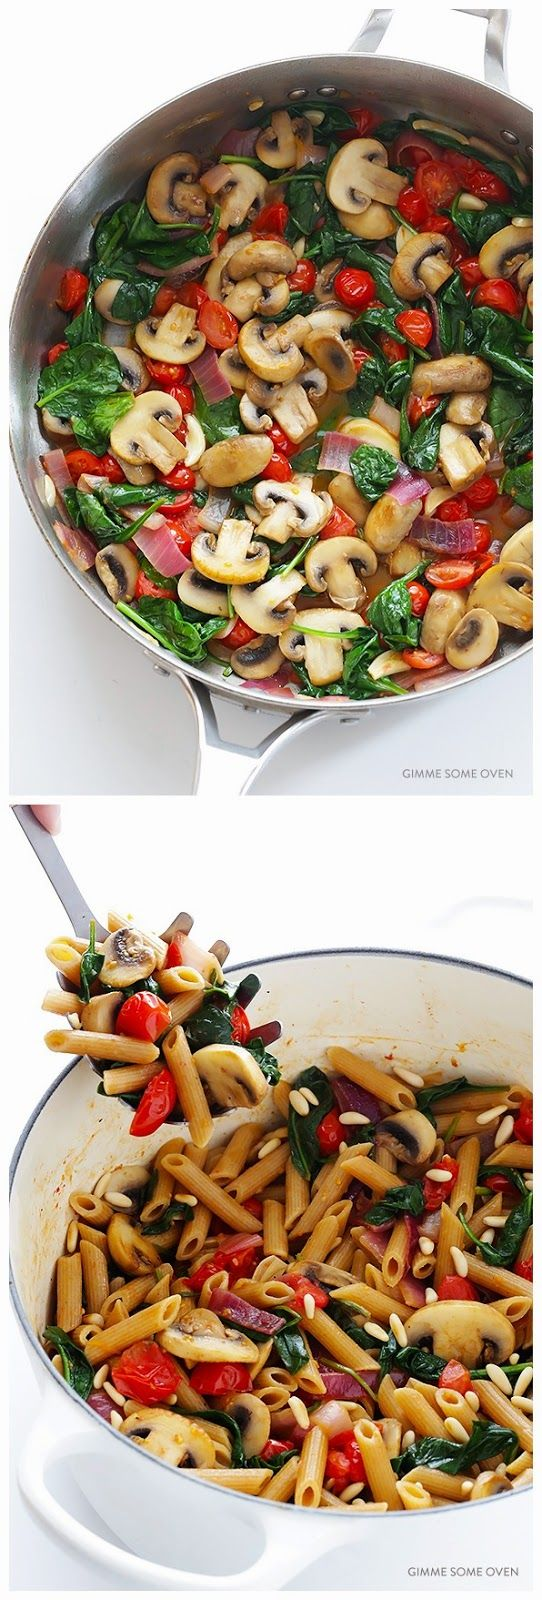 PASTA WITH MUSHROOMS, TOMATOES & SPINACH    INGREDIENTS     1 pound whole-wheat pasta, cooked al dente according to package instructions ...